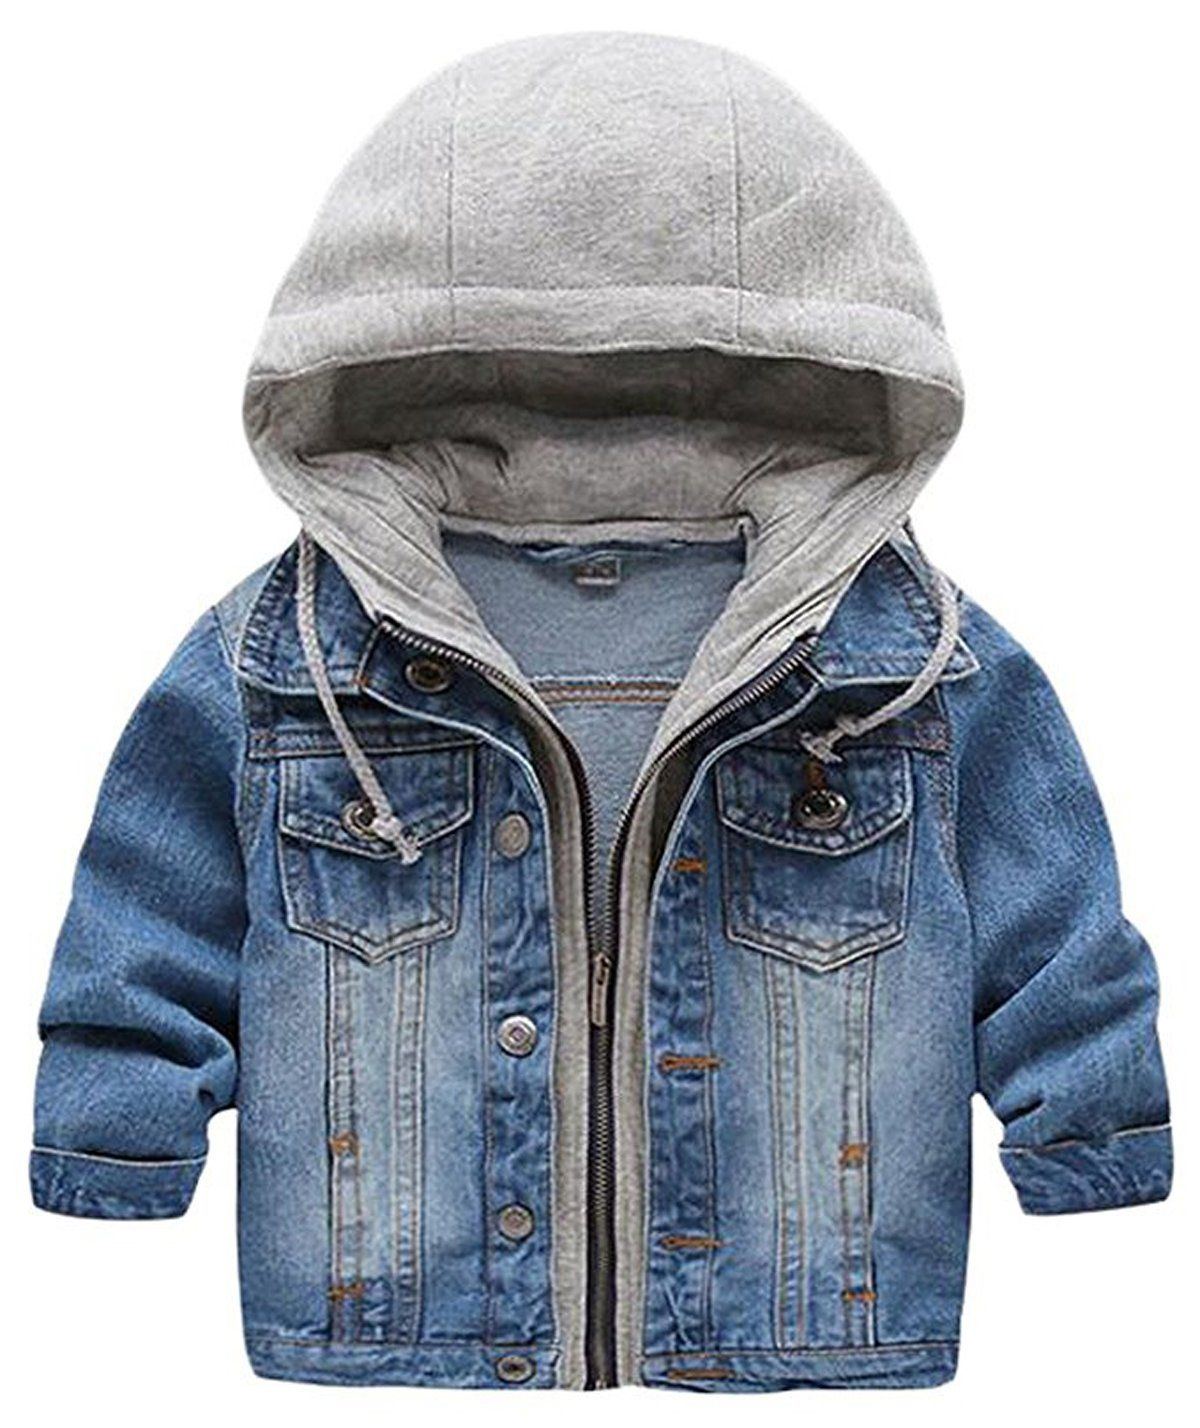 5de613de3f01 Kid Baby Boys Hooded Lapel Zipper Pocket Denim Jackets Coats ...